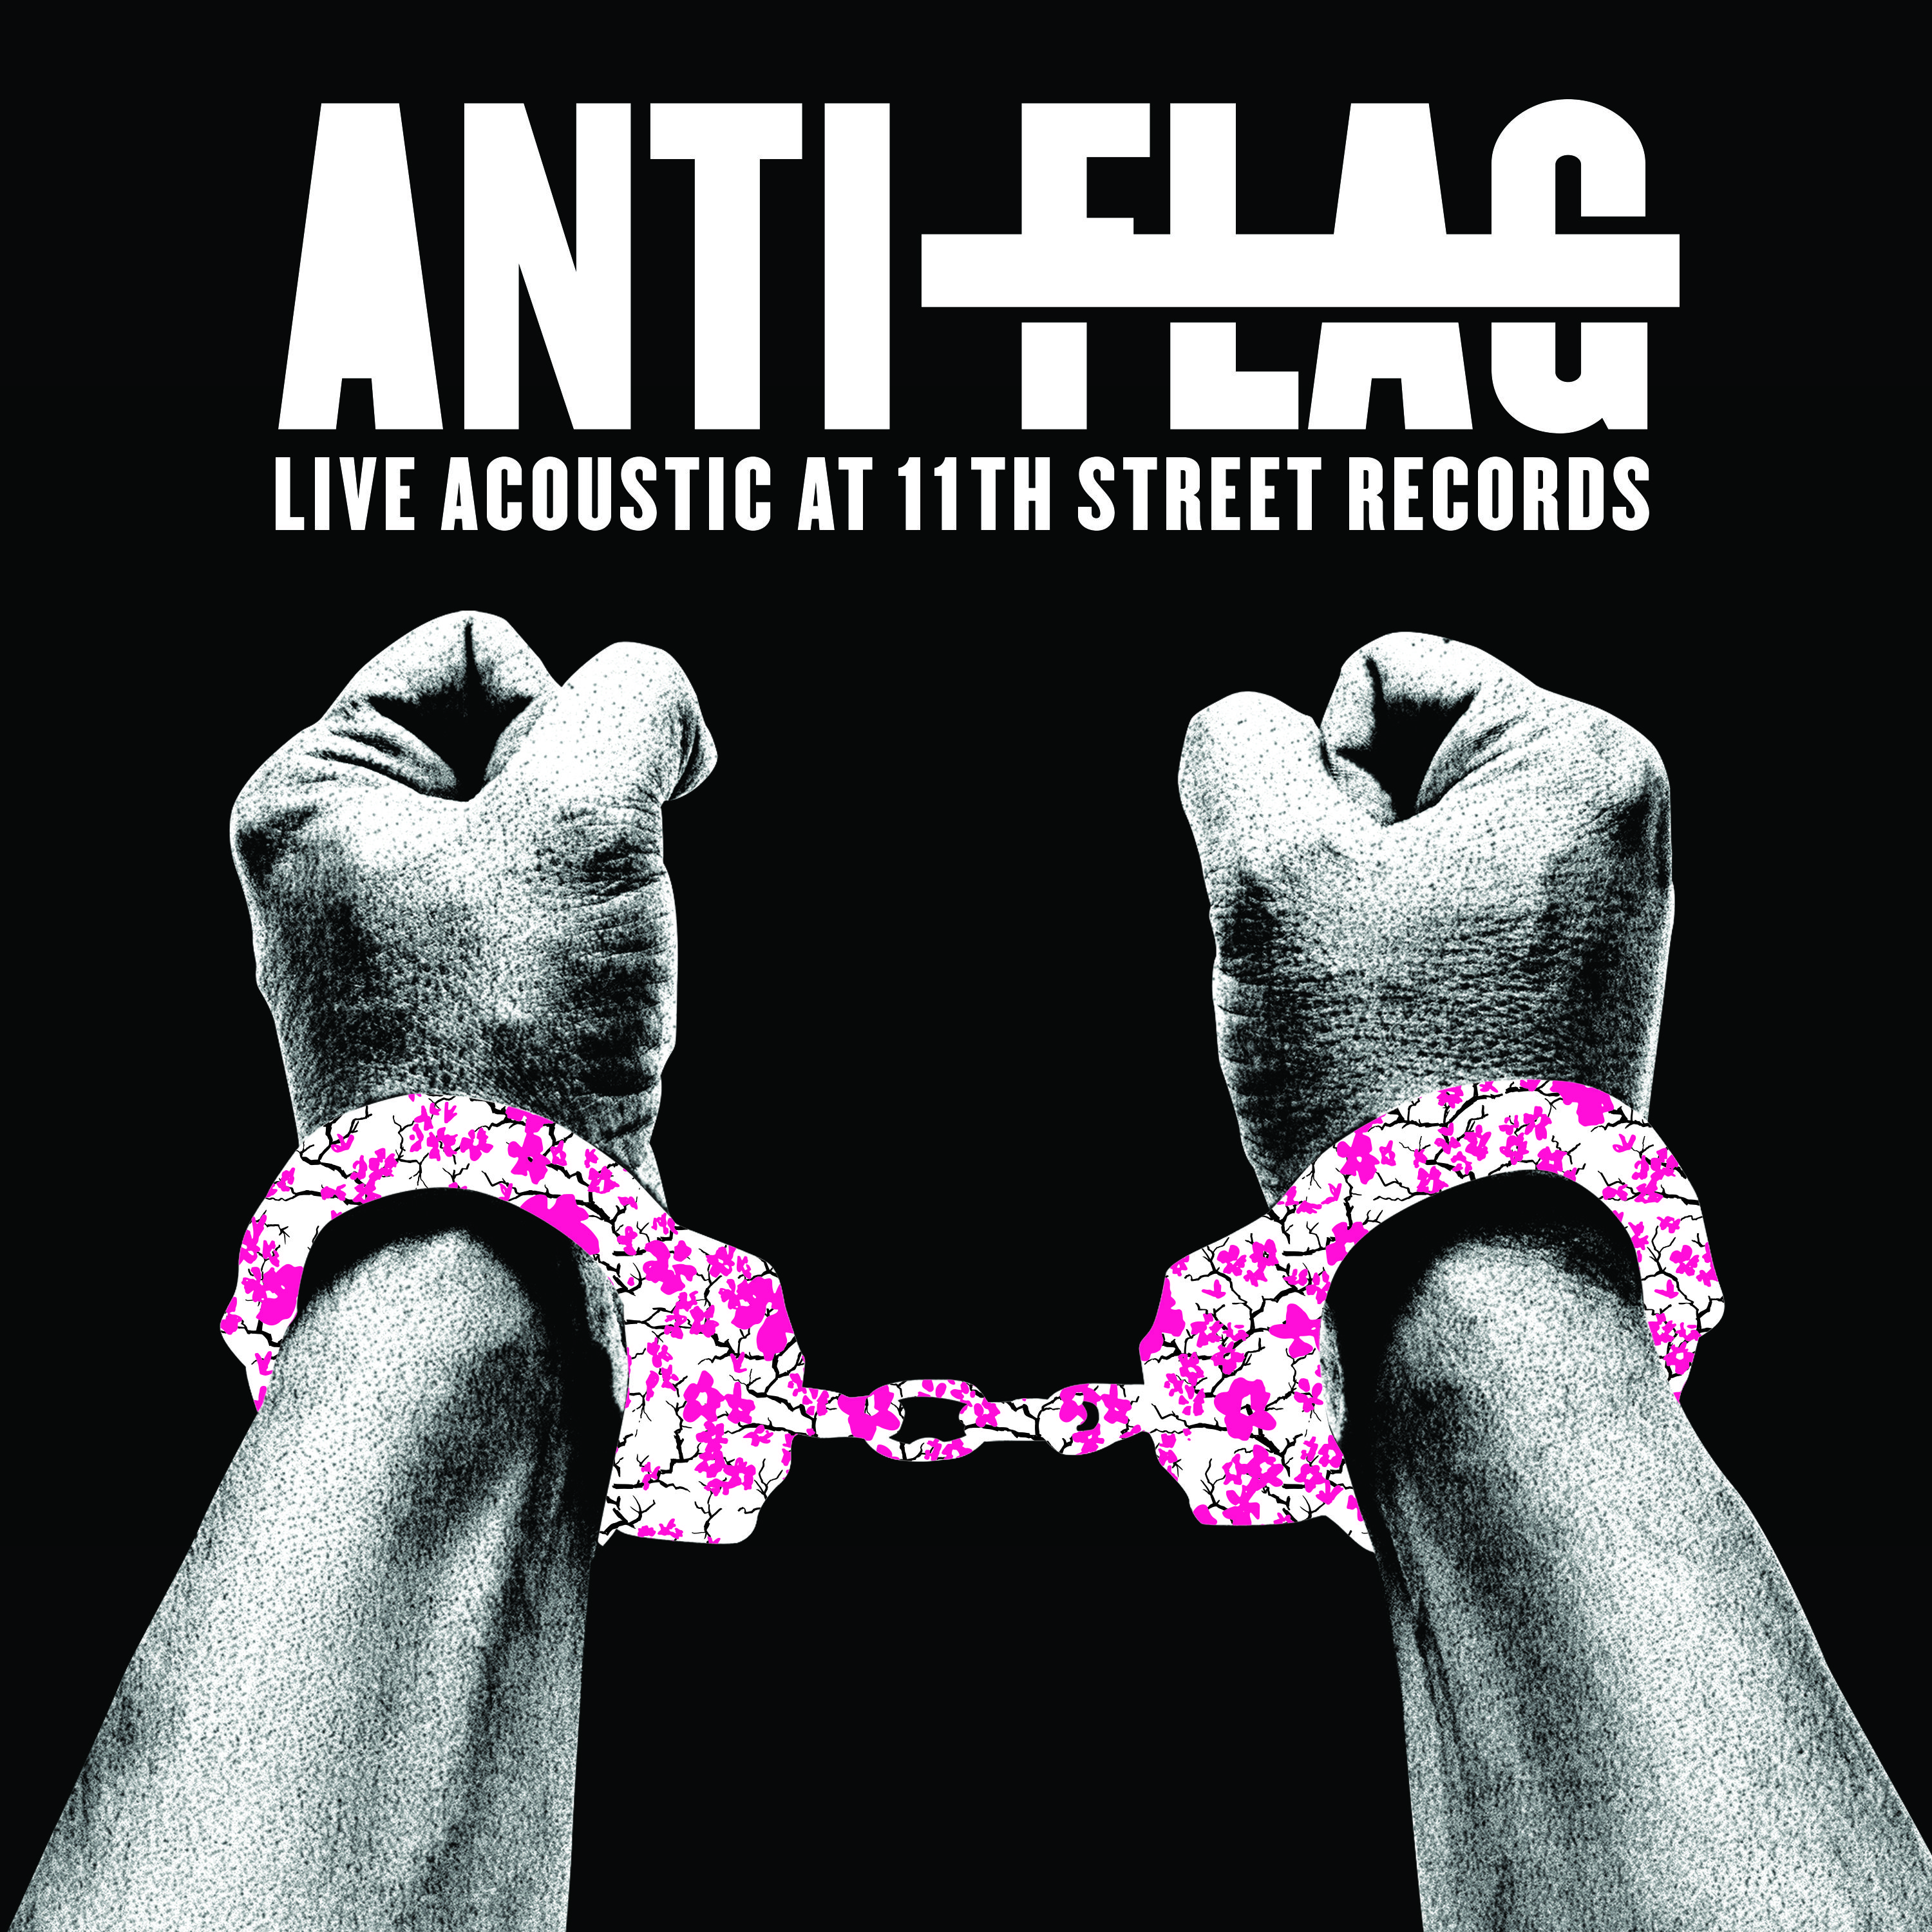 Anti Flag Release Live Acoustic Album Live Acoustic At 11th Street Records Out Digitally November 20 New York N Y P Anti Flag Record Store Album Covers